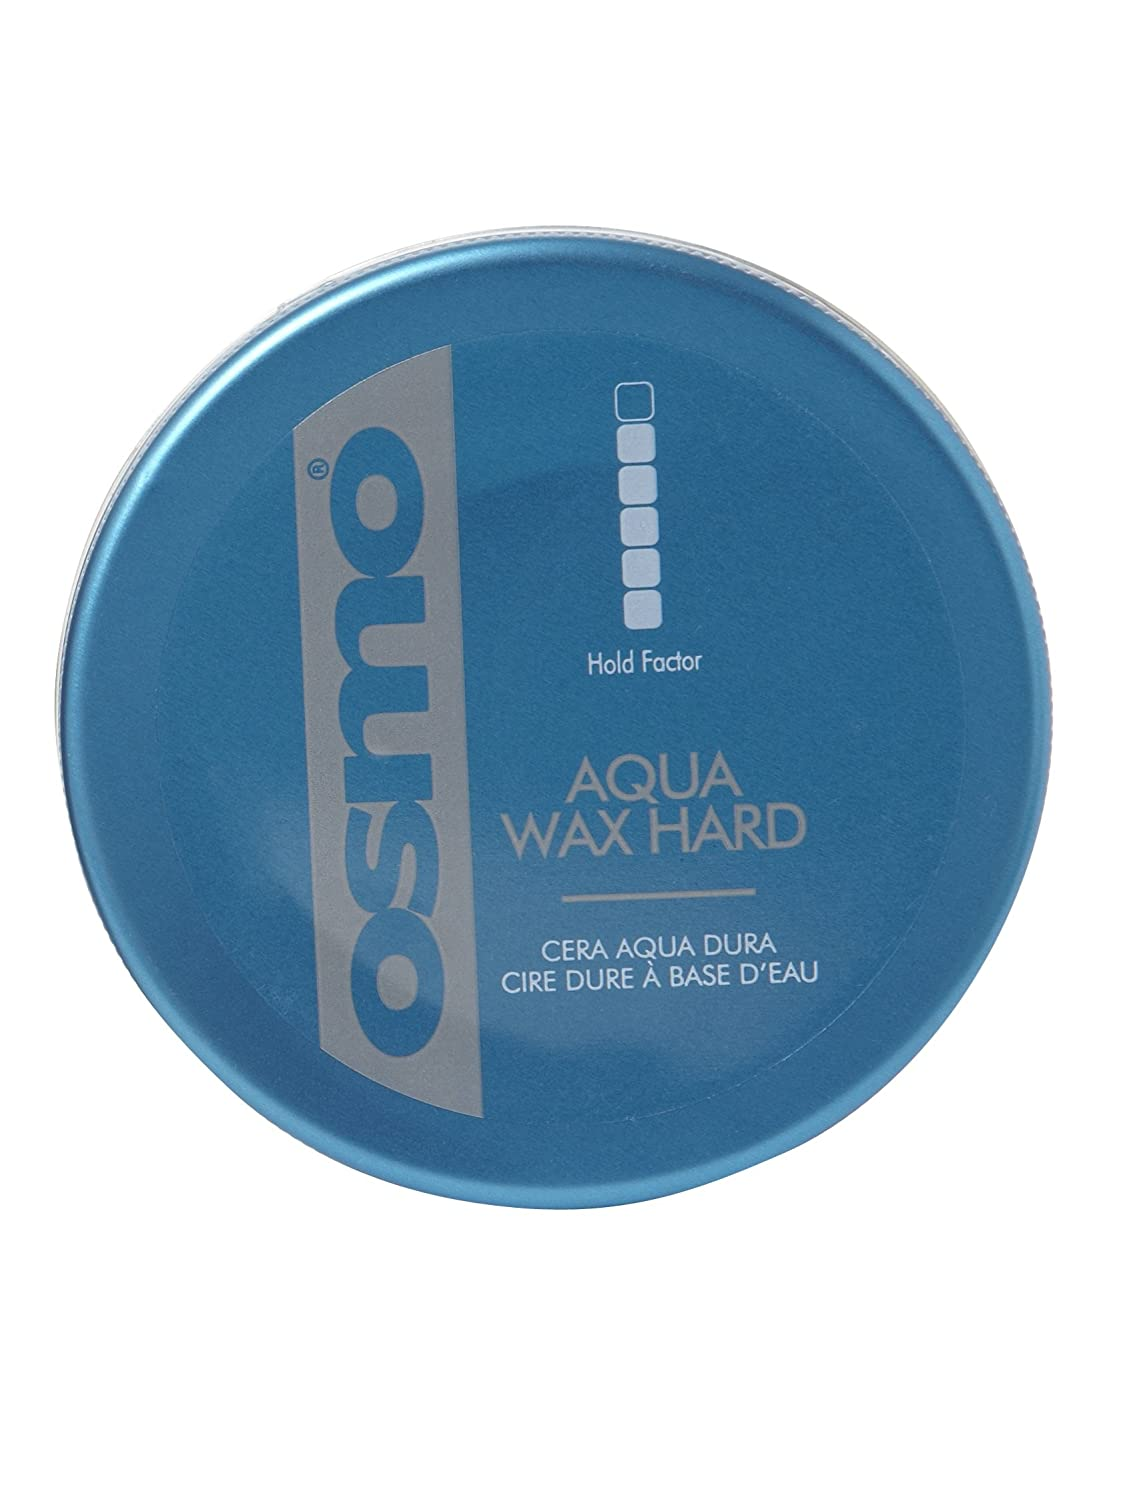 Osmo Aqua Wax Hard - For An Incredible Shine And Strong Hold - 100ml Osmo Essence 061007